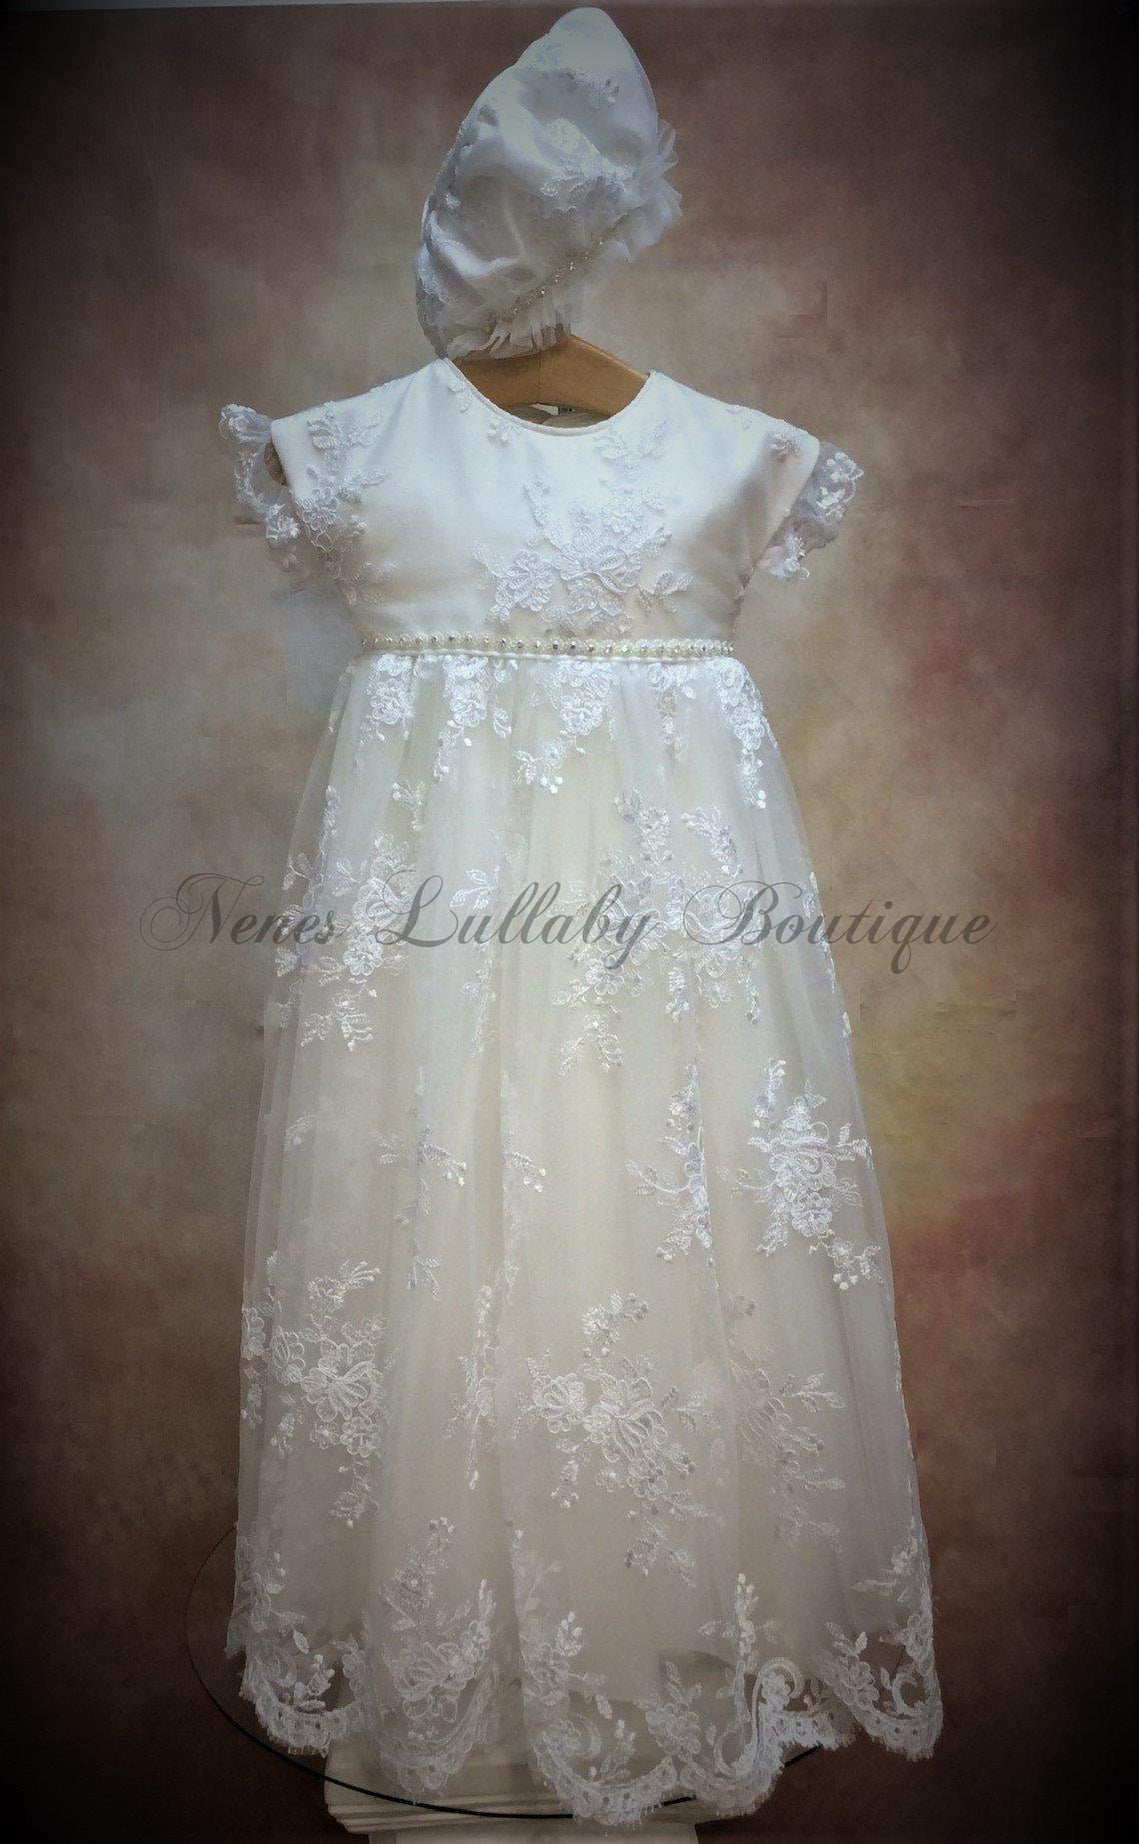 Piccolo Bacio Girls Christening Gown Vanina - Nenes Lullaby Boutique Inc